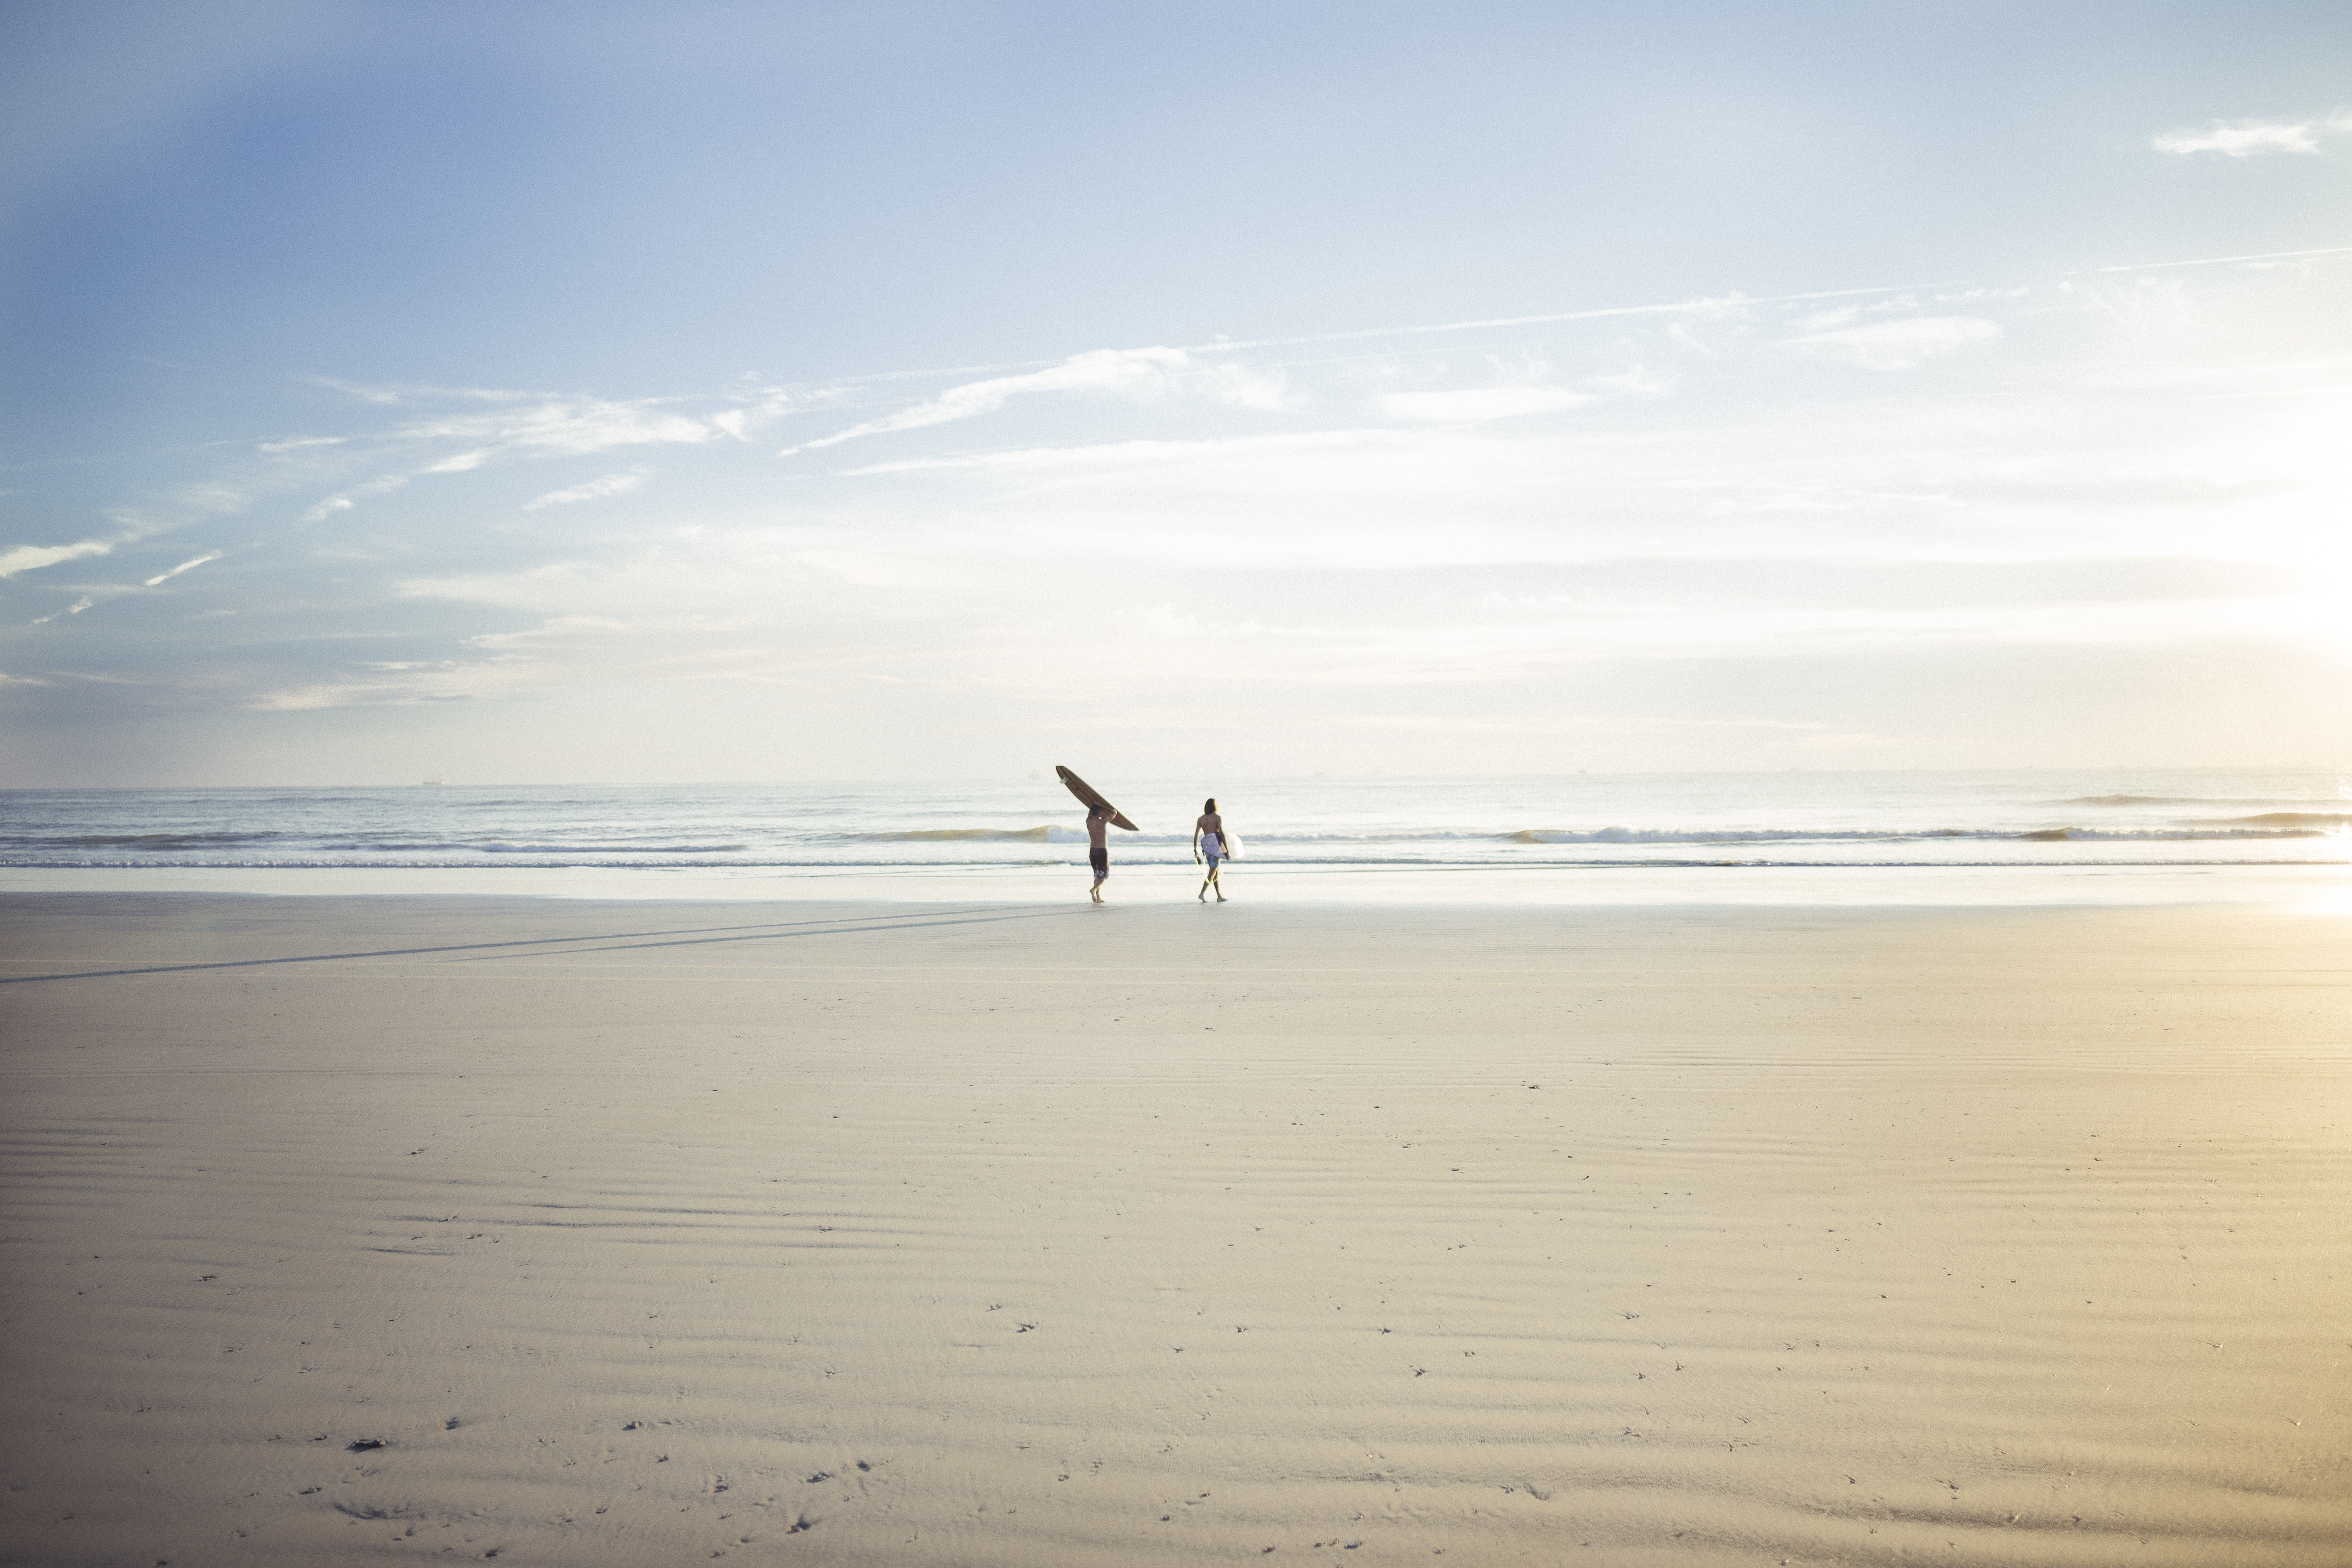 Two surfers walking on the sandy beach towards the ocean